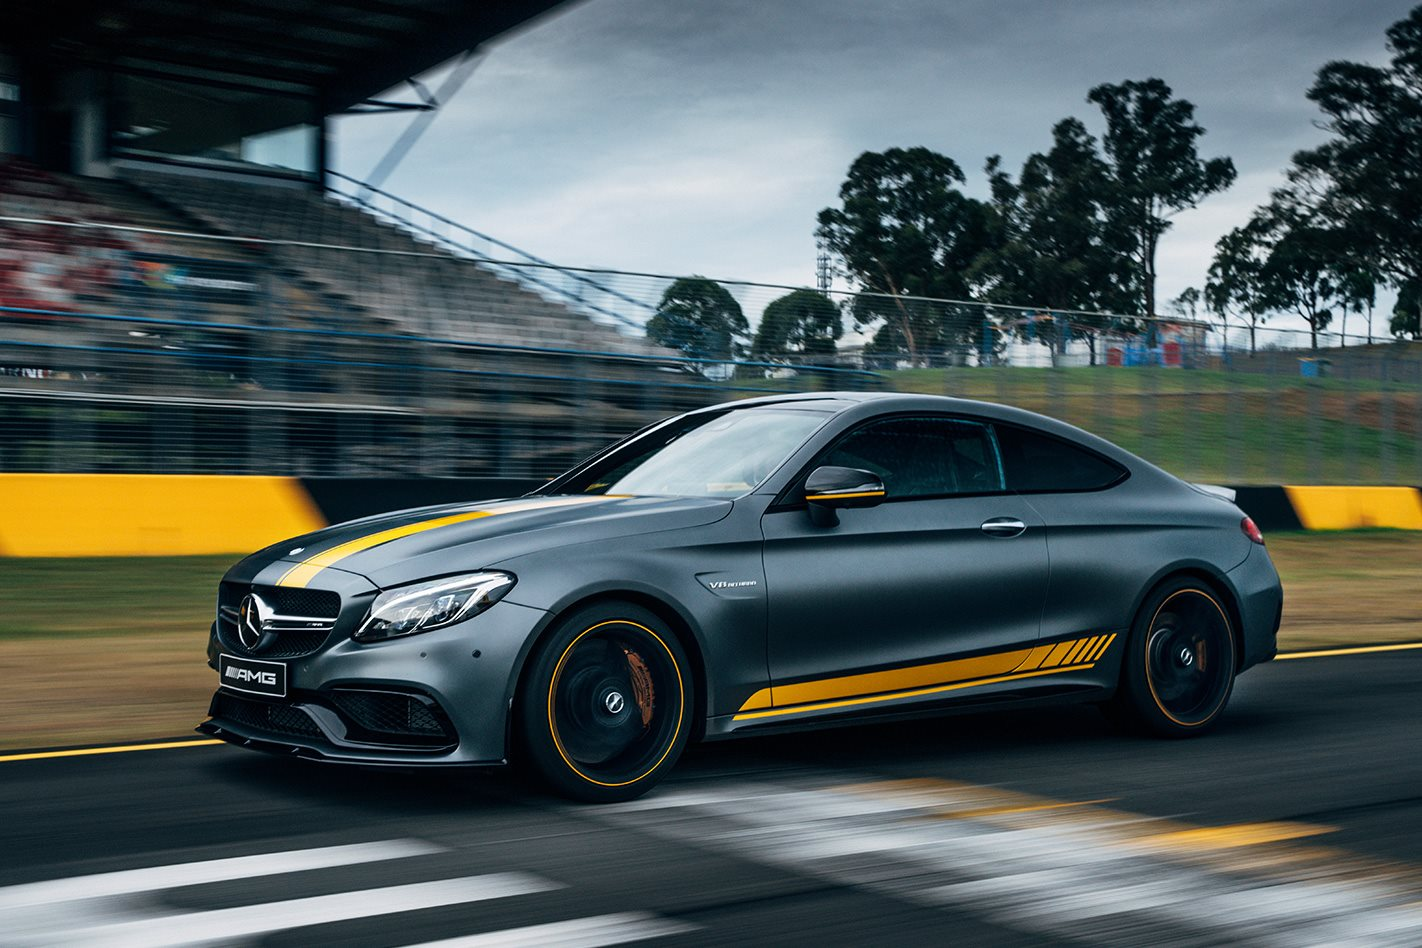 fastest rc car ever with Mercedes Amg C63 S Coupe Review on Mercedes Amg C63 S Coupe Review besides New Toyota Supra Course 2018 Launch besides X 15 furthermore Beginners Guide further New Peugeot Rcz R Sports Car Details Pictures.